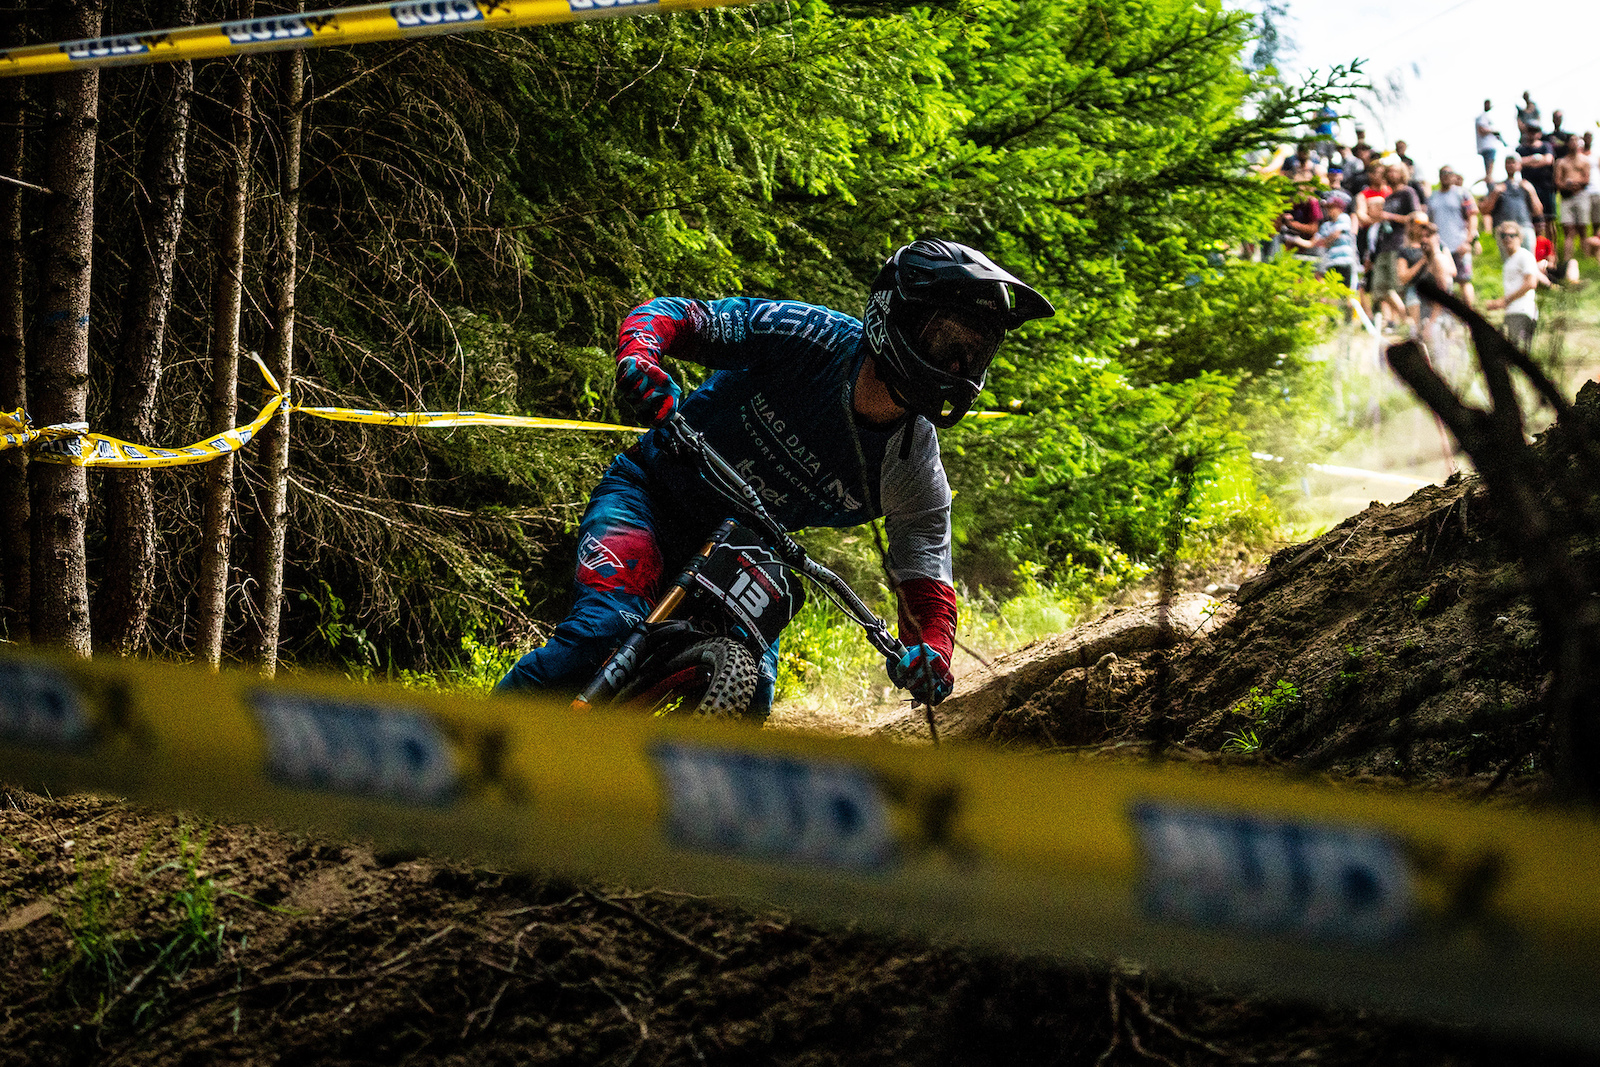 Slawek Lukasik NSBikes rider did really well today. 9th place for the rider from Poland.